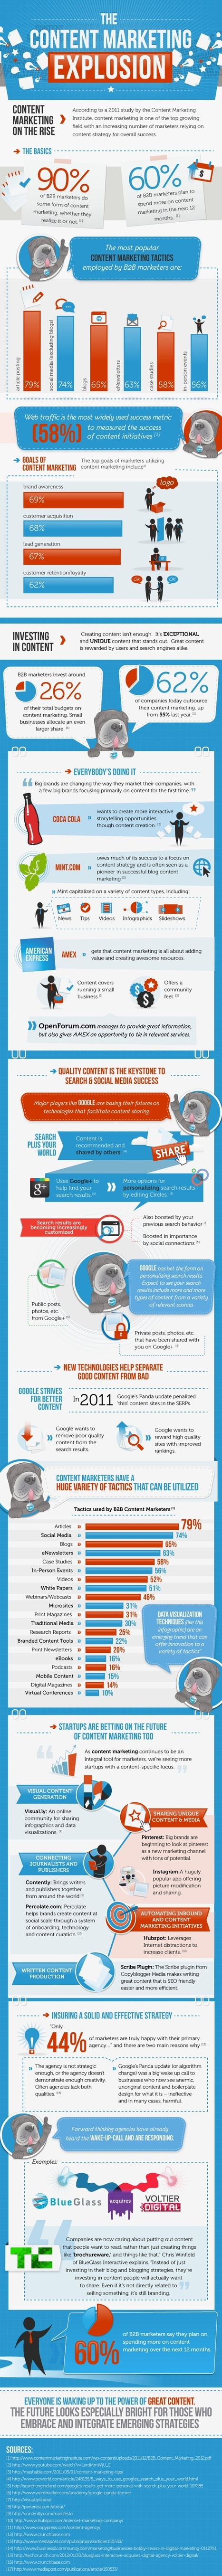 What You Need to Know About Content Marketing in 2012 [INFOGRAPHIC] | AtDotCom Social media | Scoop.it